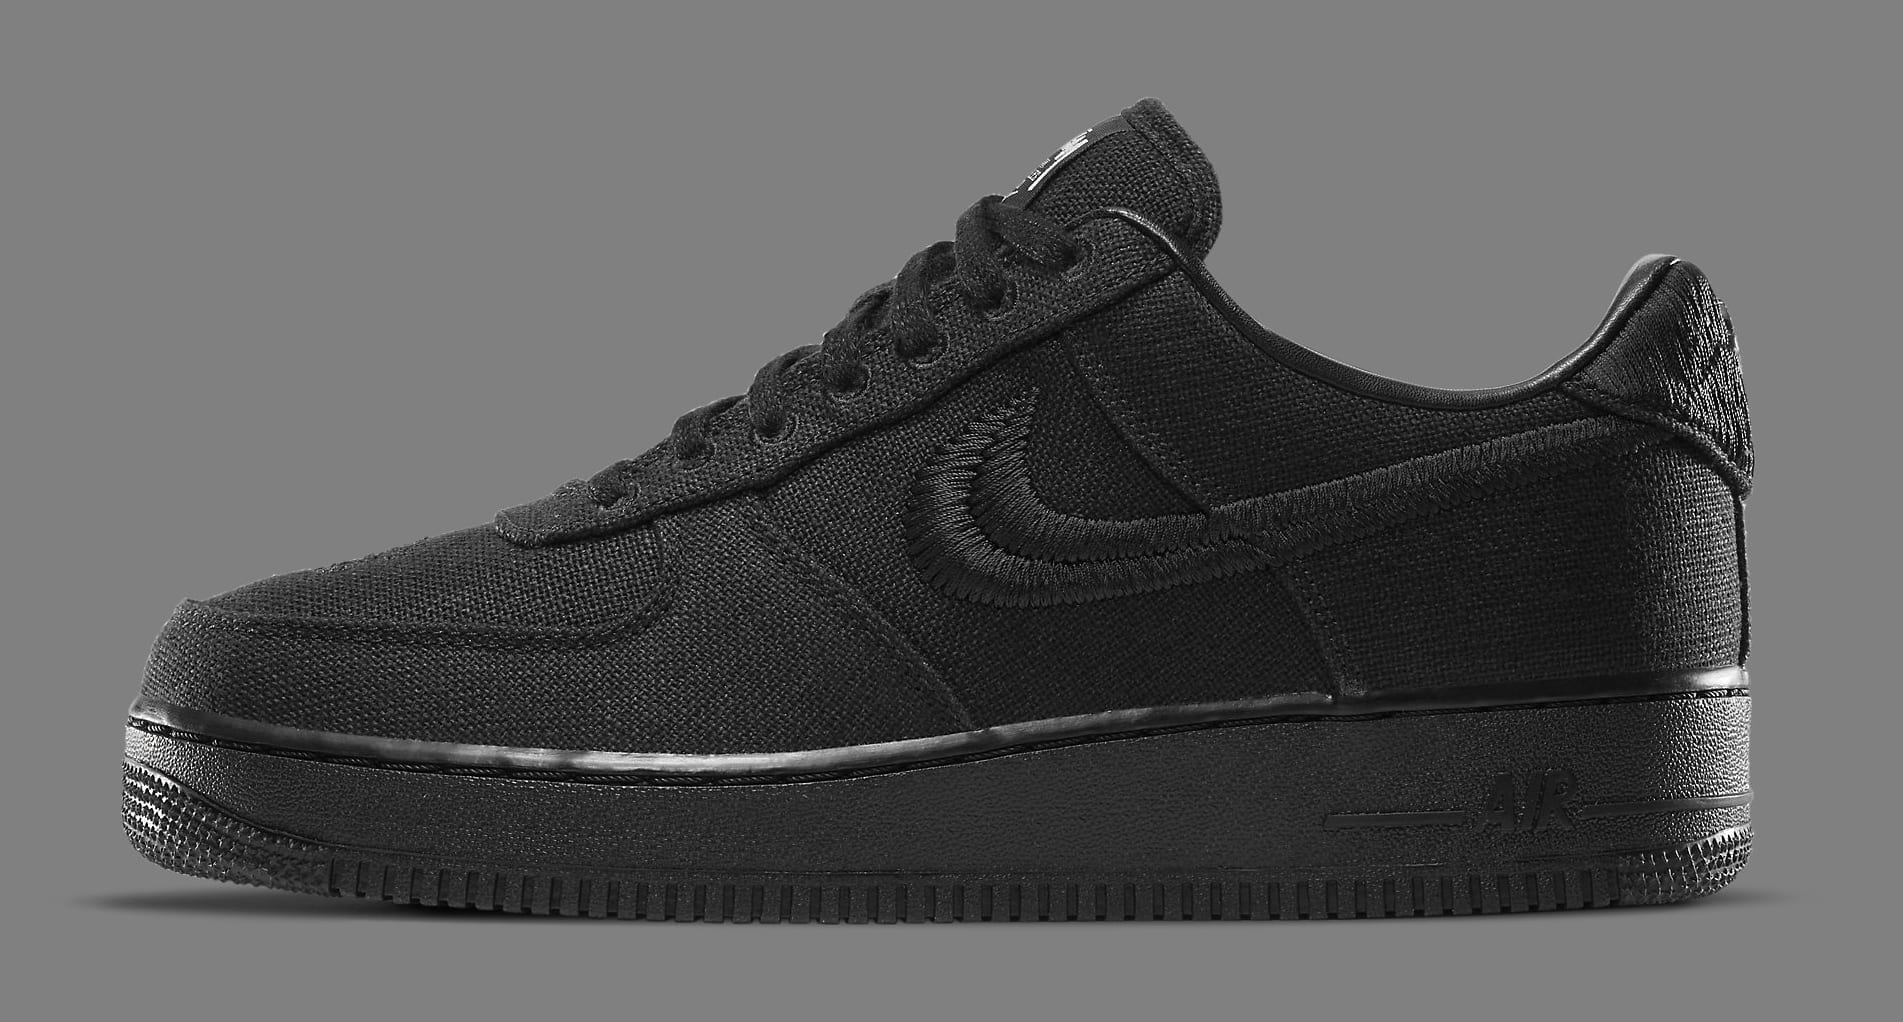 Stussy x Nike Air Force 1 Low 'Black' CZ9084-001 Lateral